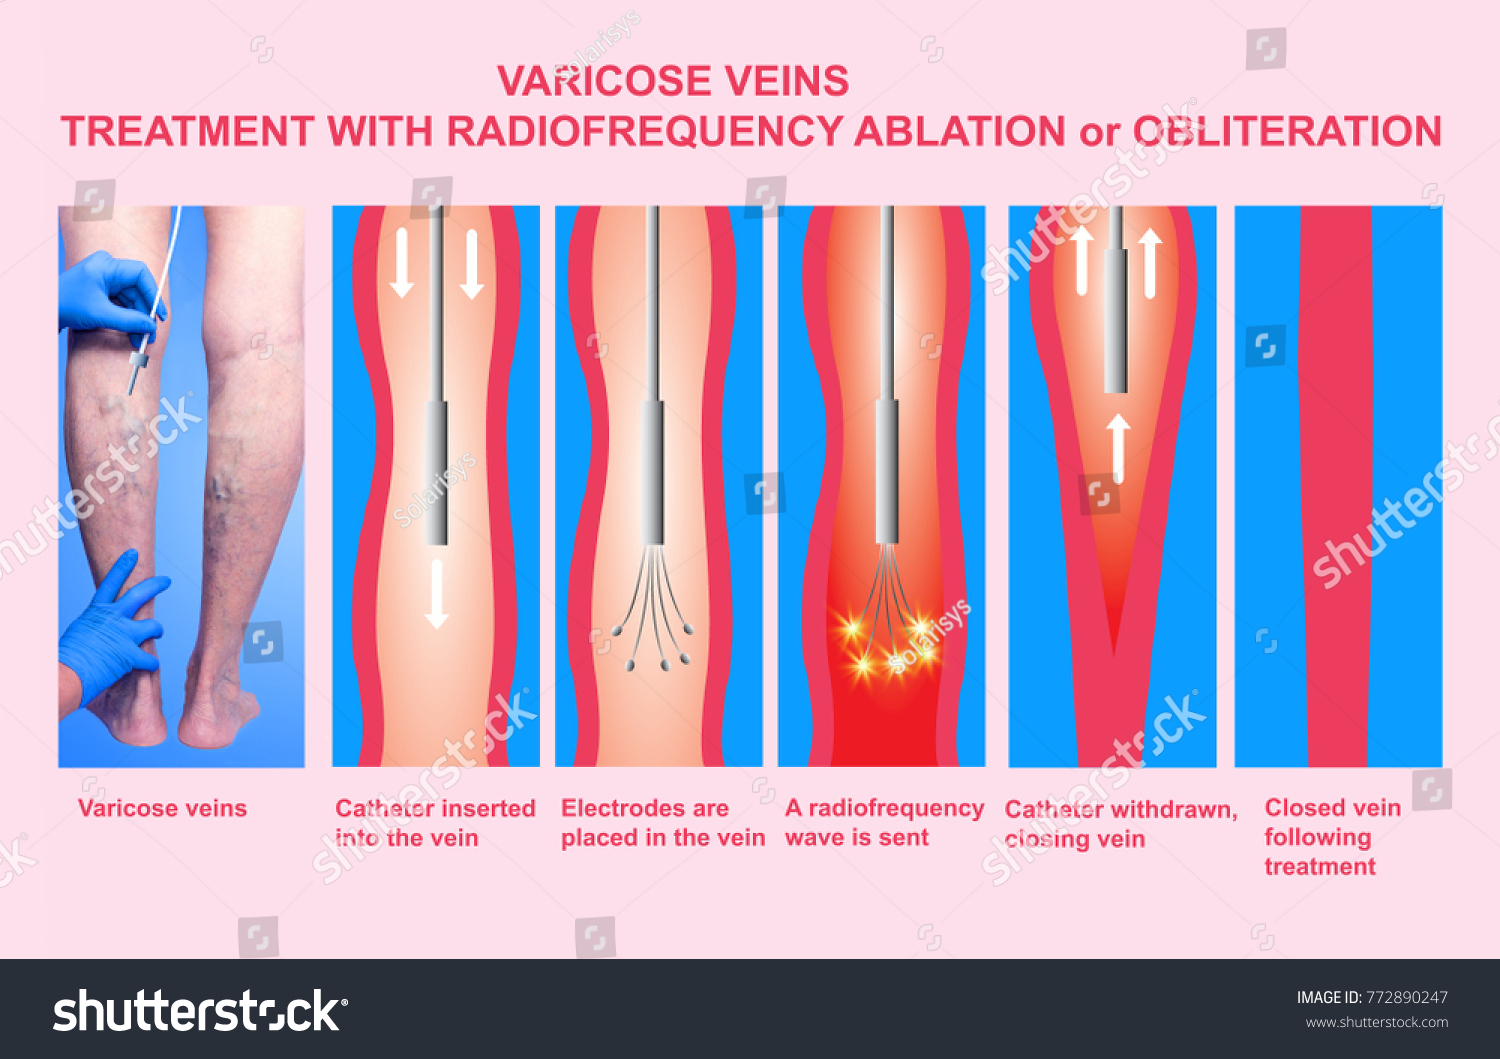 hight resolution of varicose veins and treatment with radiofrequency ablation